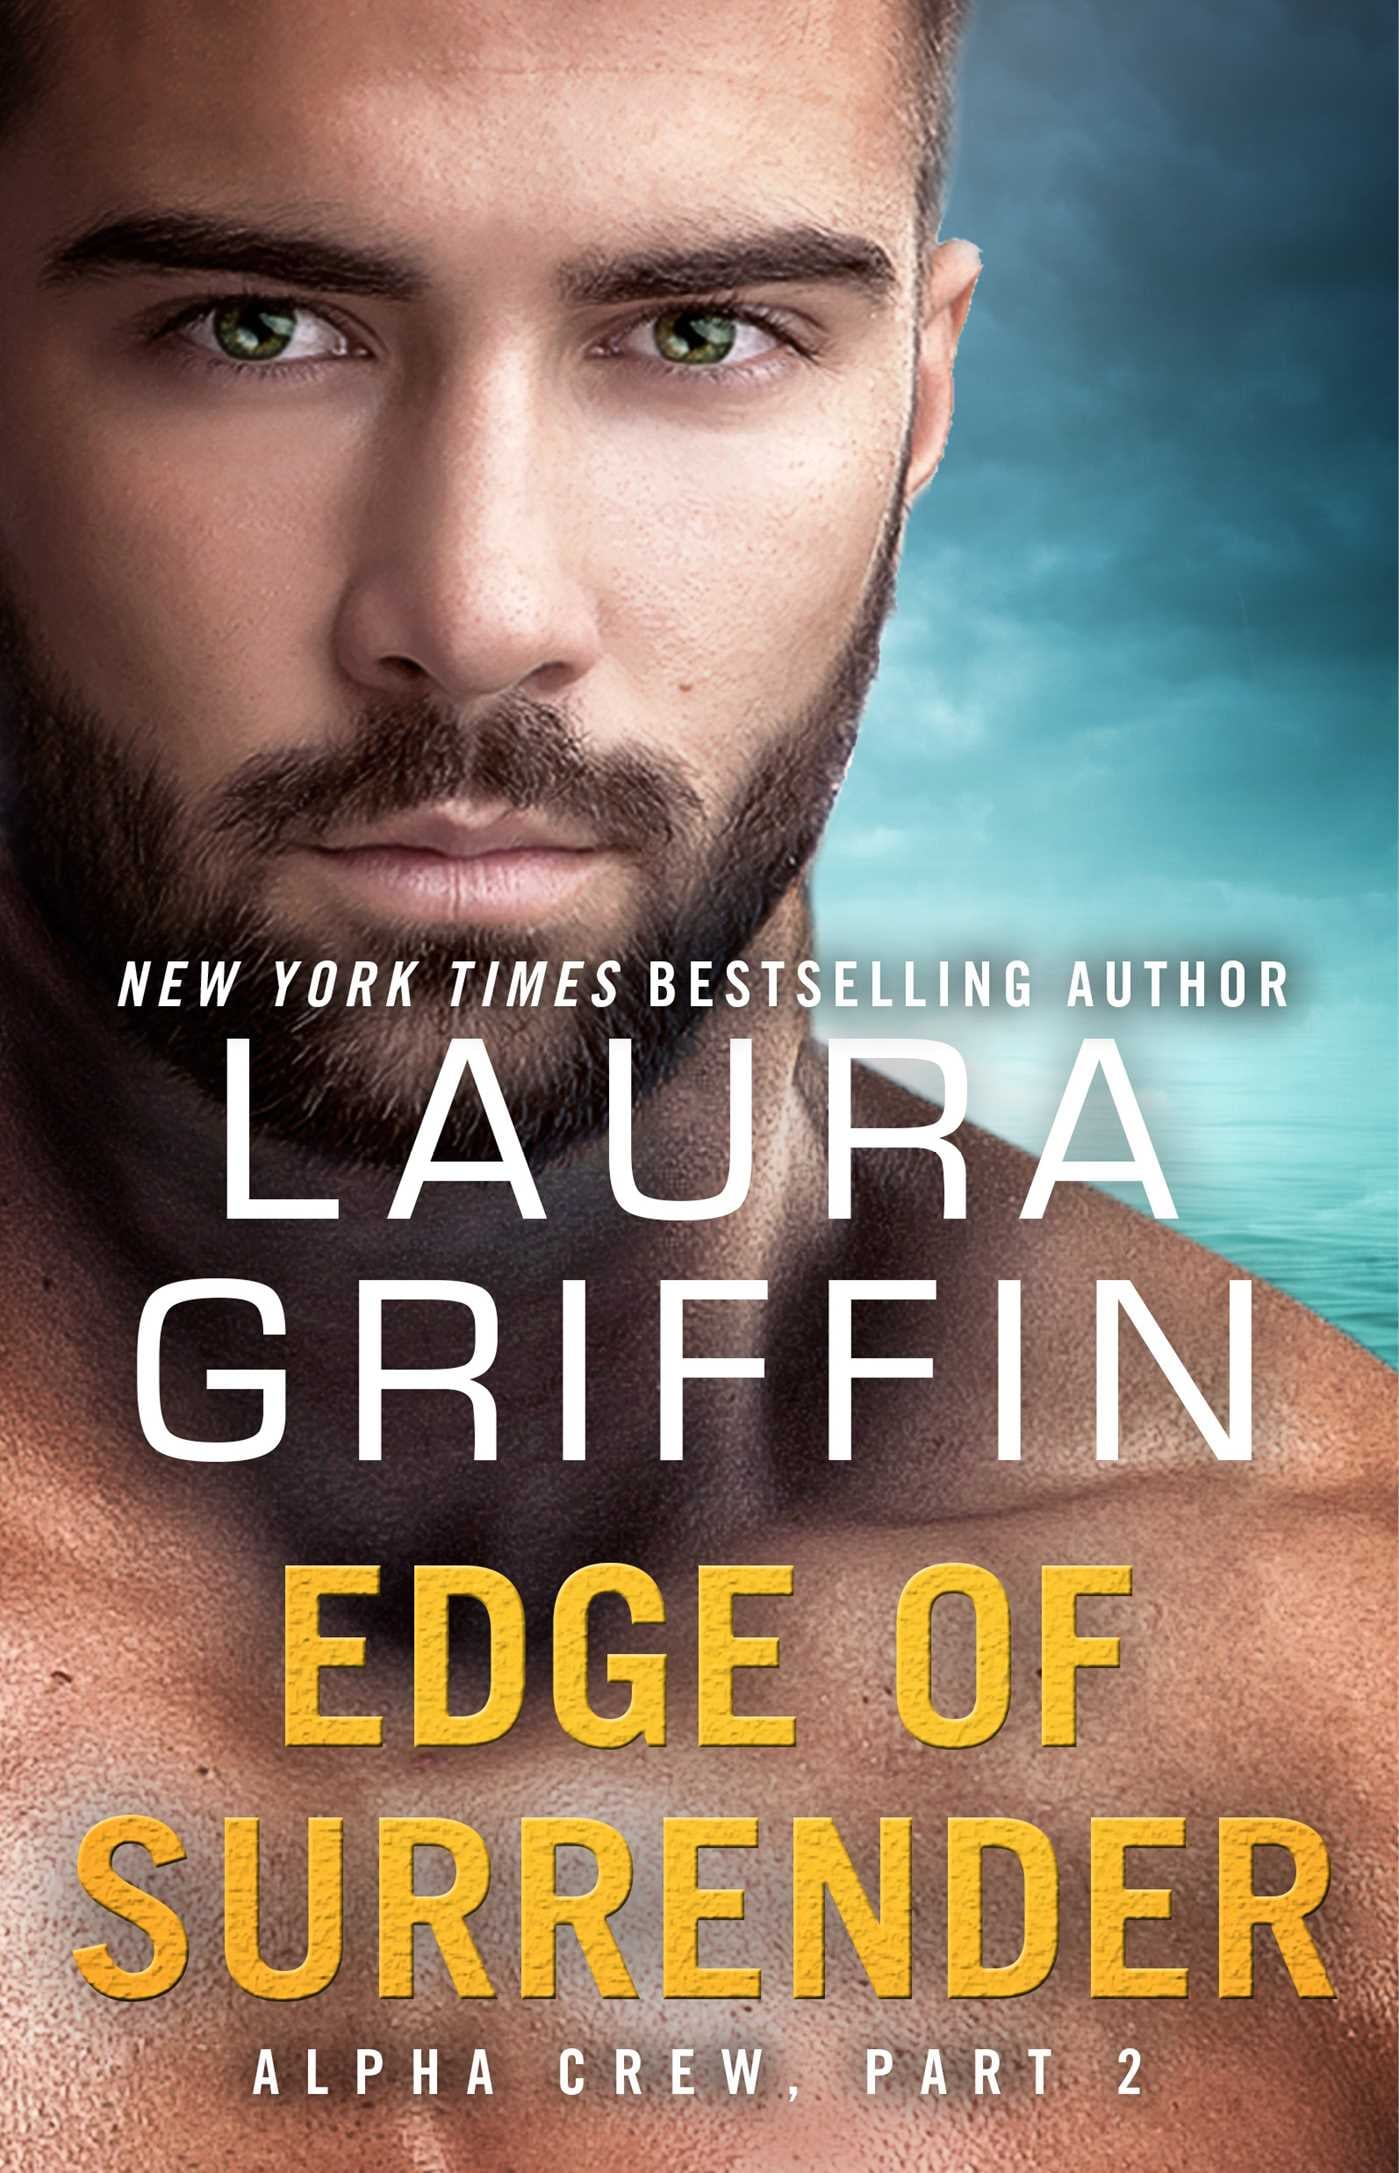 PopsugarLoveBooksEdge of Surrender by Laura Griffin ExcerptWill Ryan Be Able to Rescue Emma From Danger in This Sultry Novel?April 6, 2016 by Terry Carter9 SharesChat with us on Facebook Messenger. Learn what's trending across POPSUGAR.In Edge of Surrender, Navy SEAL Ryan Owen has one job: keep Emma Wright safe at all costs. But after a night of passion, Emma takes off and Ryan soon realizes he's not the only one looking for her. Can he figure out who's after the beautiful government aide and why before she falls into the wrong hands . . . if she hasn't already?For more on this sultry novel, visit XOXO After Dark!PG-13 Excerpt:Emma didn't know what time it was. Or what day. She didn't even know what city they were in as they jogged on the sidewalk alongside a congested street. Ryan had her hand clamped in his, and she struggled to keep up, but she kept glancing over her shoulder to see if anyone was after them.They reached a strip center, and he tugged her through a parking lot.